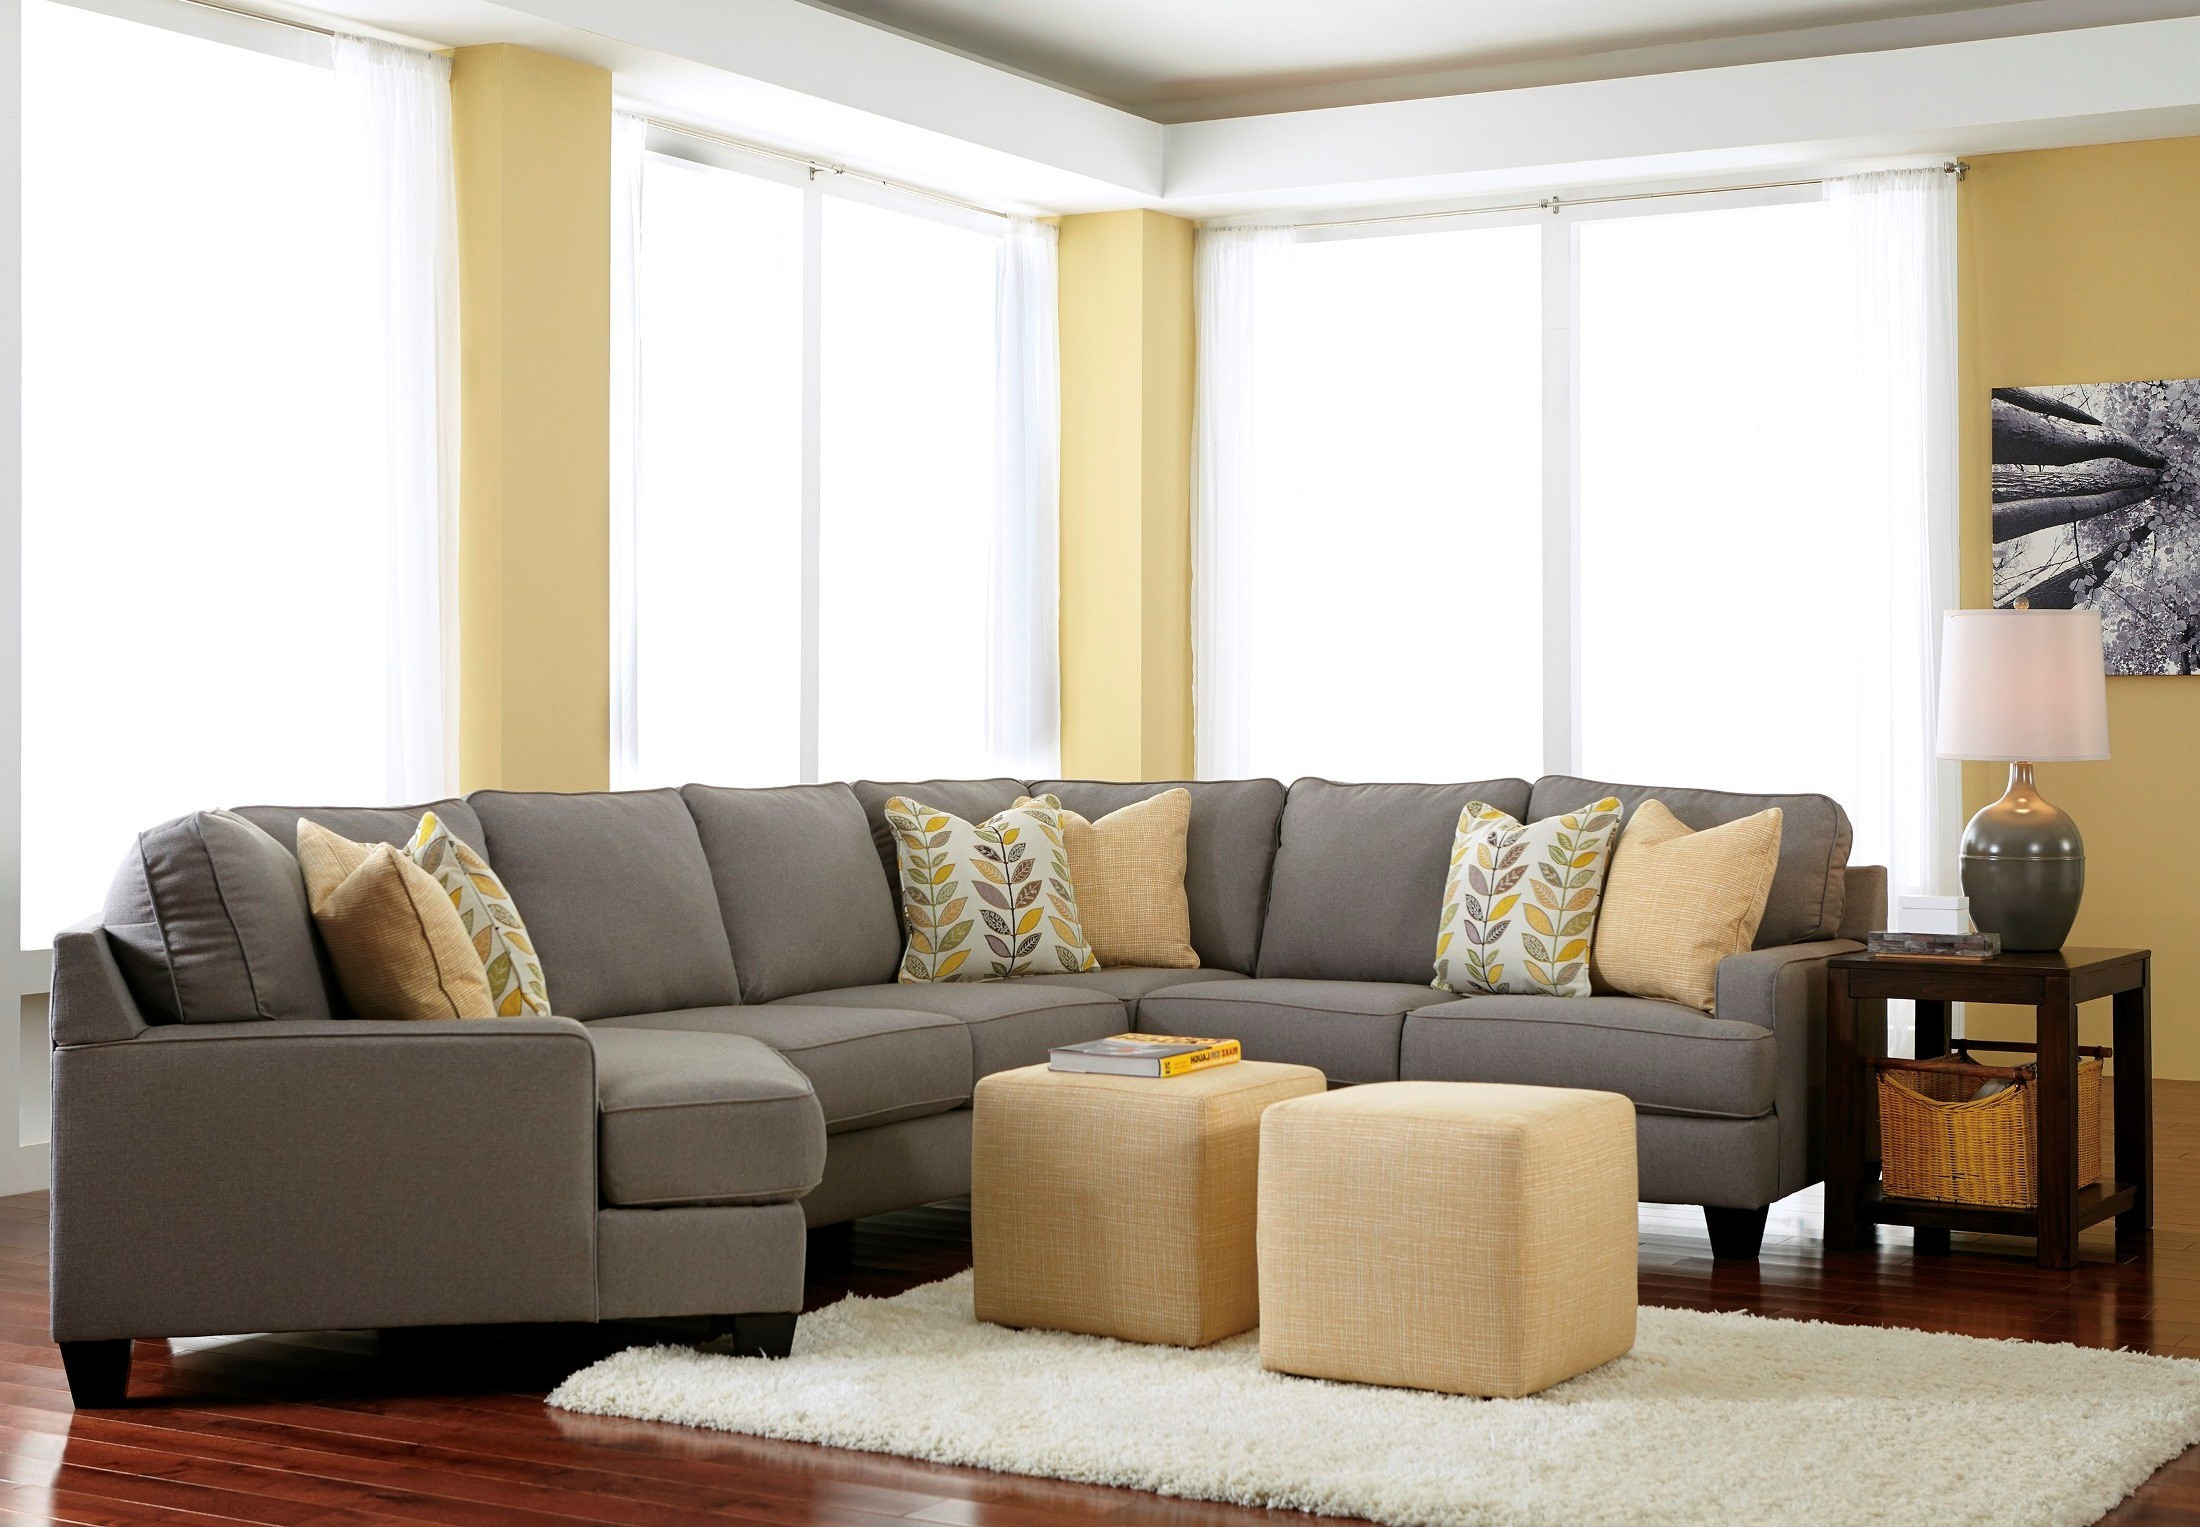 Best ideas about Family Room Sectionals . Save or Pin Chamberly Alloy LAF Cuddler Sectional from Ashley Now.